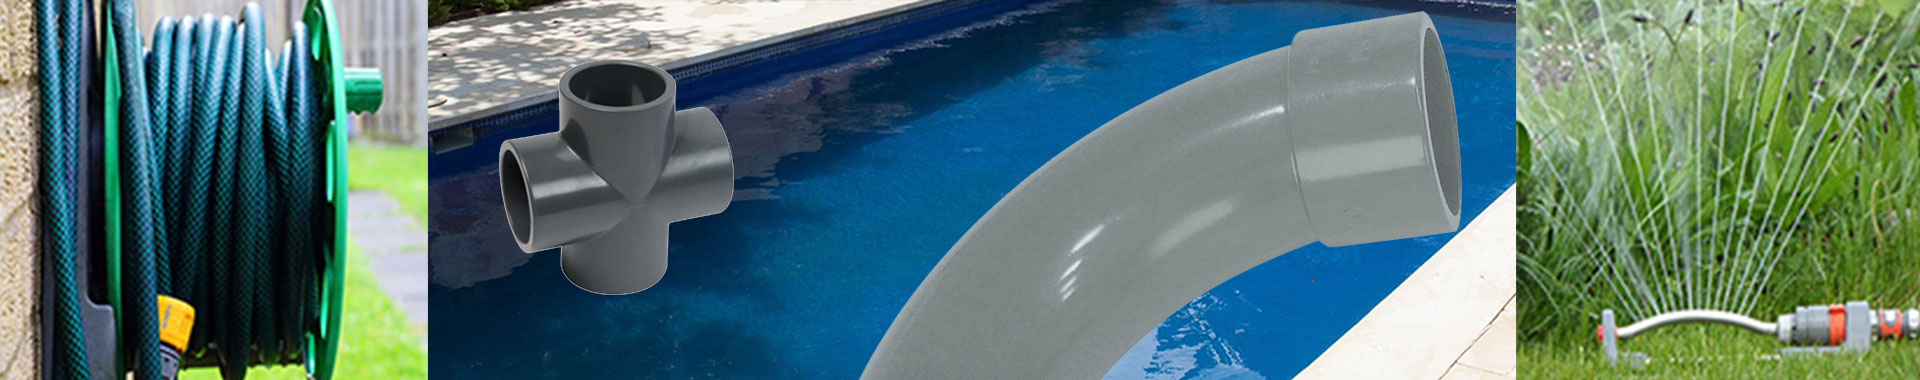 Raccords et tuyaux drive piscines tours 37 drive piscine for Piscine tours 37